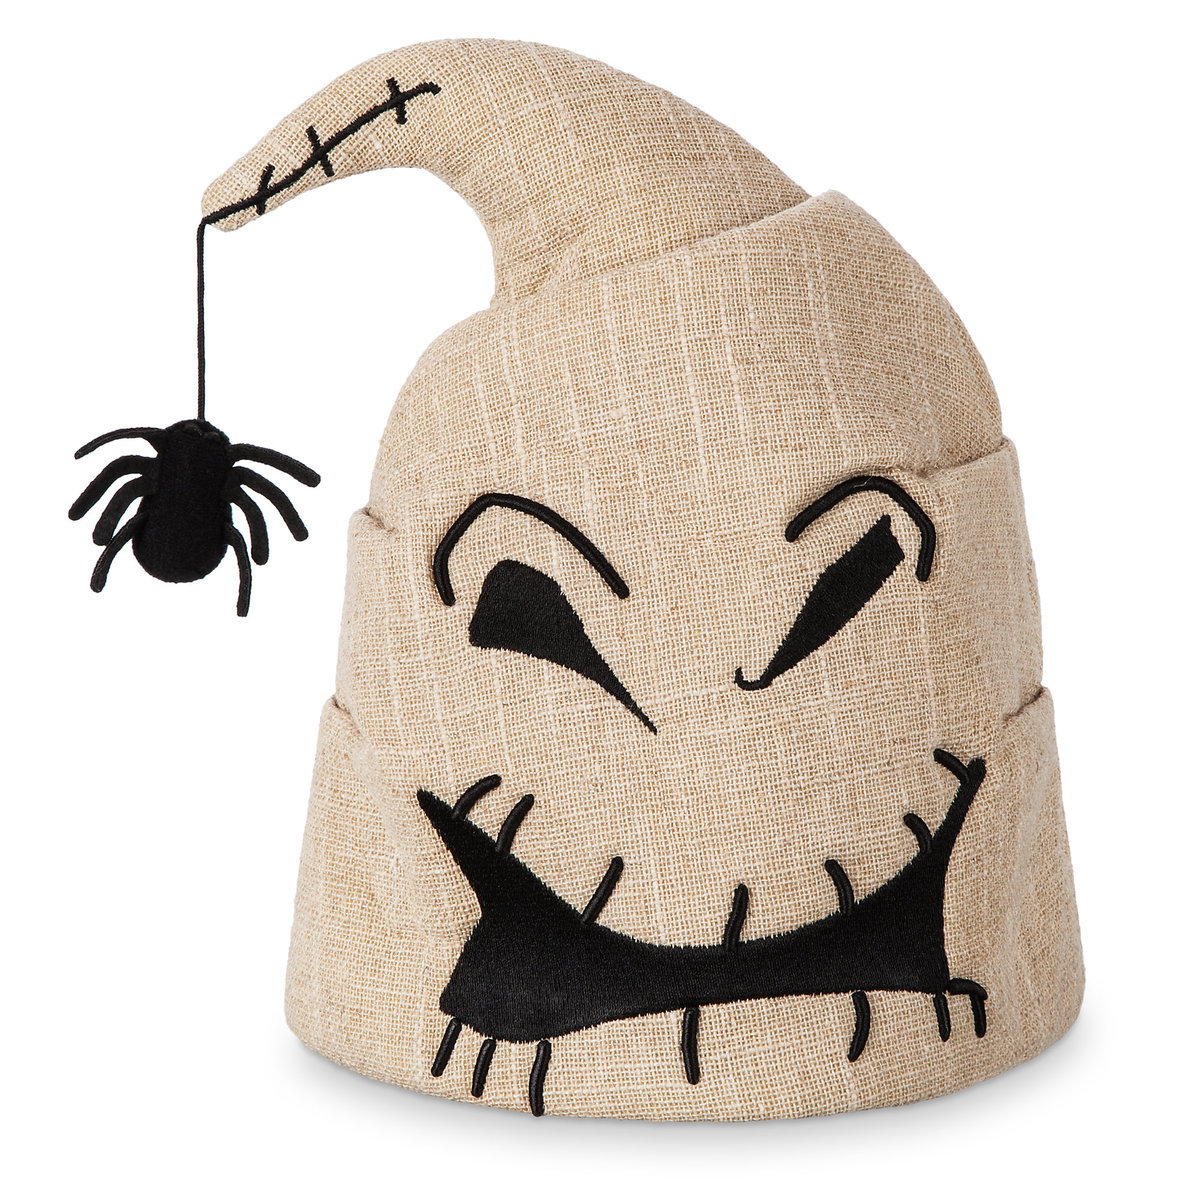 ba33ed9fd6073 Product Image of Oogie Boogie Hat for Adults - The Nightmare Before  Christmas   1